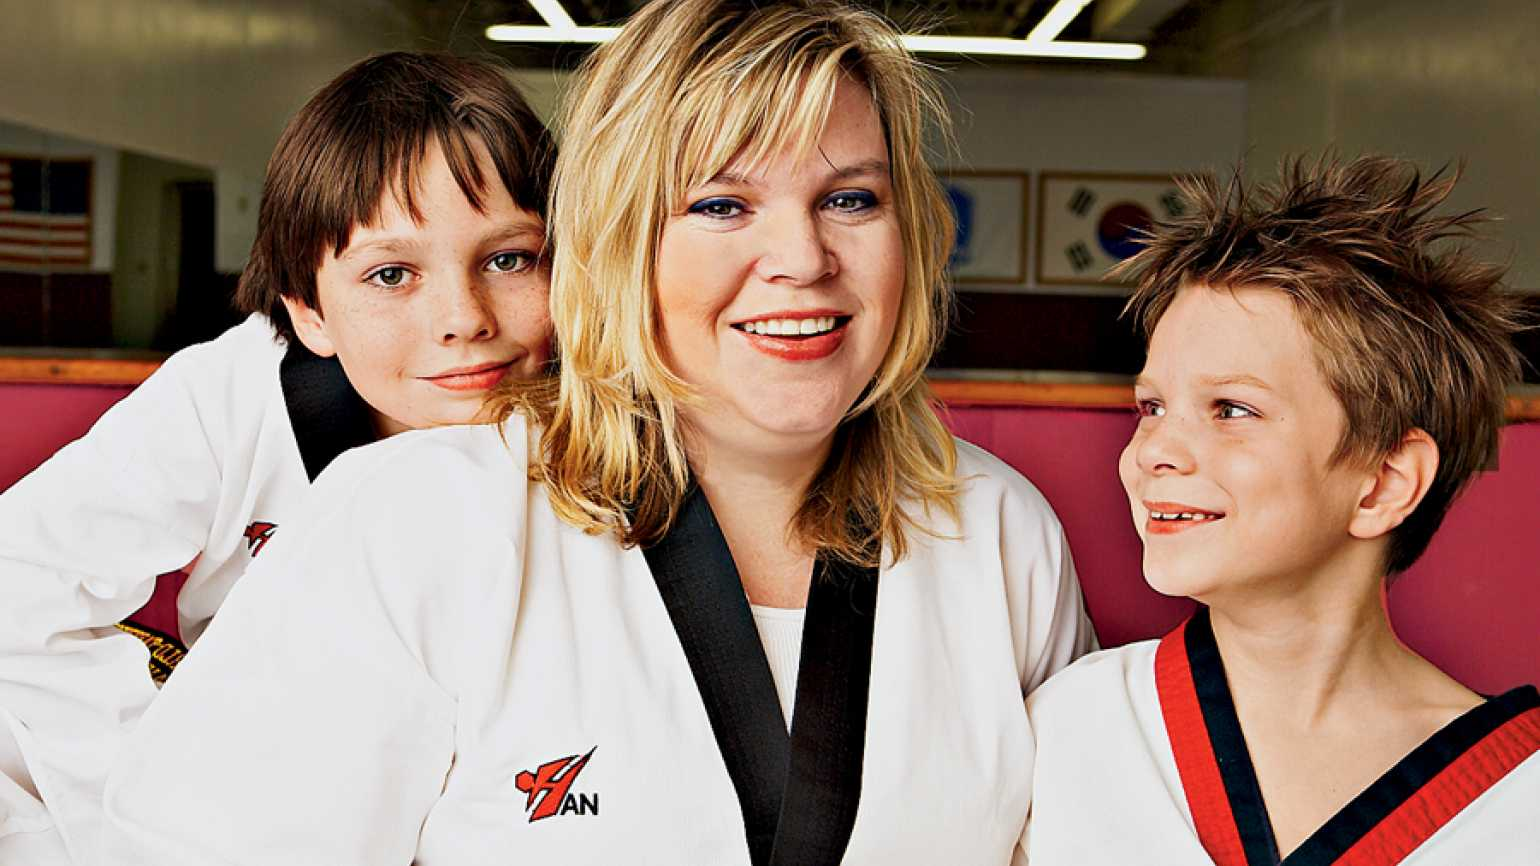 Bridgette Mitcheff at the Tae Kwon Do studio with Alec and Zachariah